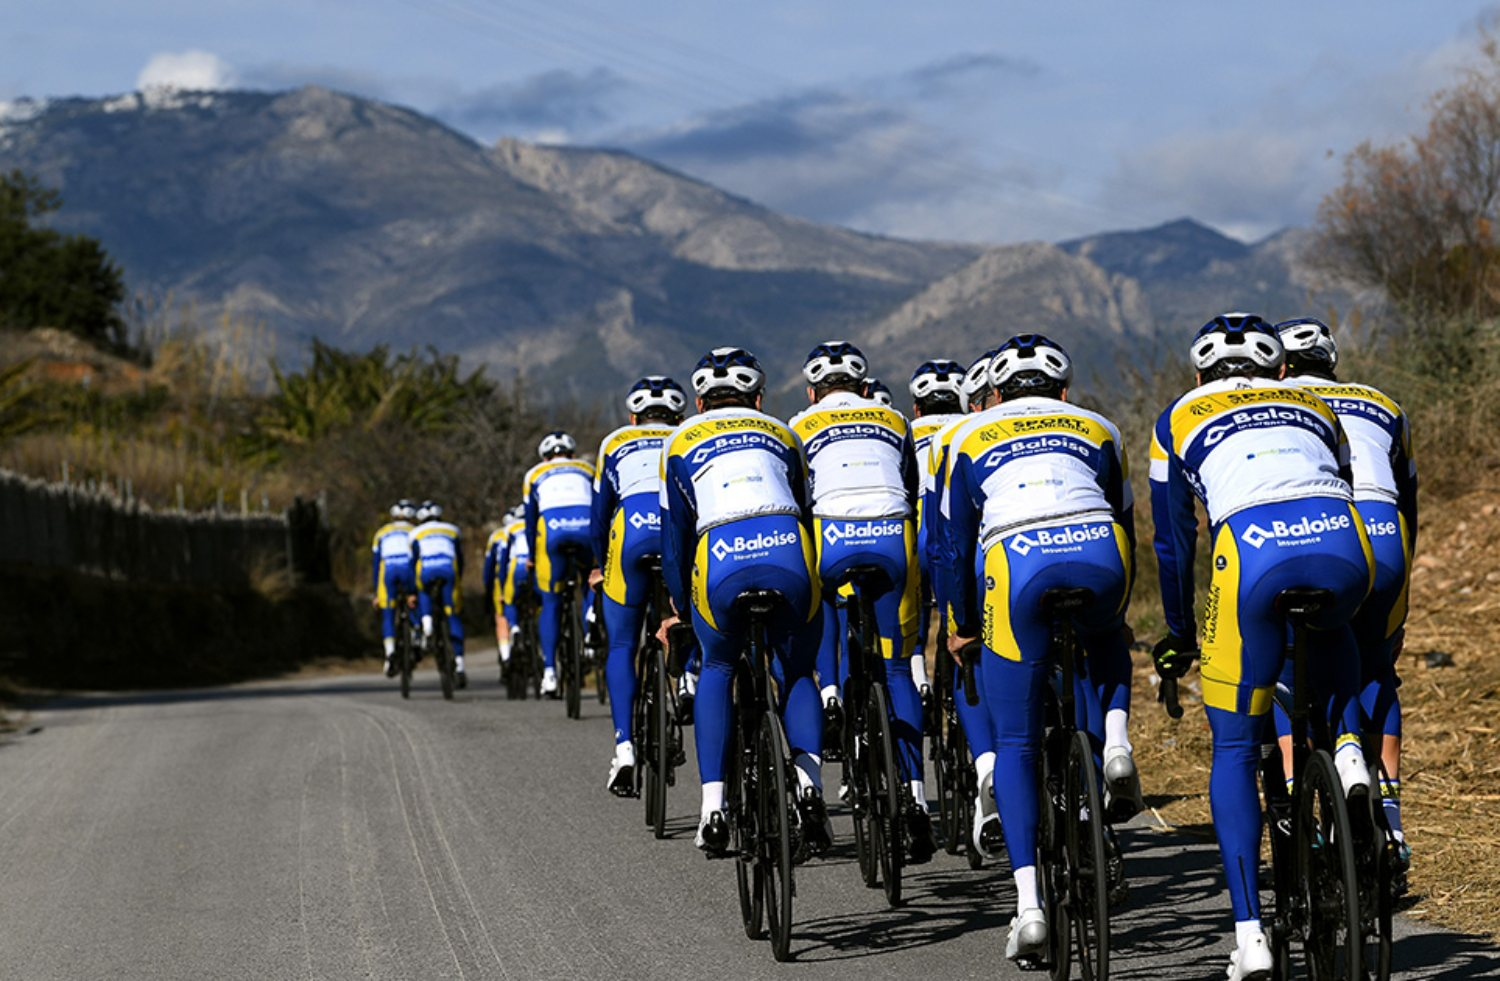 ALTEA, SPAIN - JANUARY 11: Riders and Team Sport Vlaanderen - Baloise / Jersey / Detail view / during the Team Sport Vlaanderen - Baloise 2021 - Training Camp / @TeamSVB / on January 11, 2021 in Altea, Spain. (Photo by Tim de Waele/Getty Images)